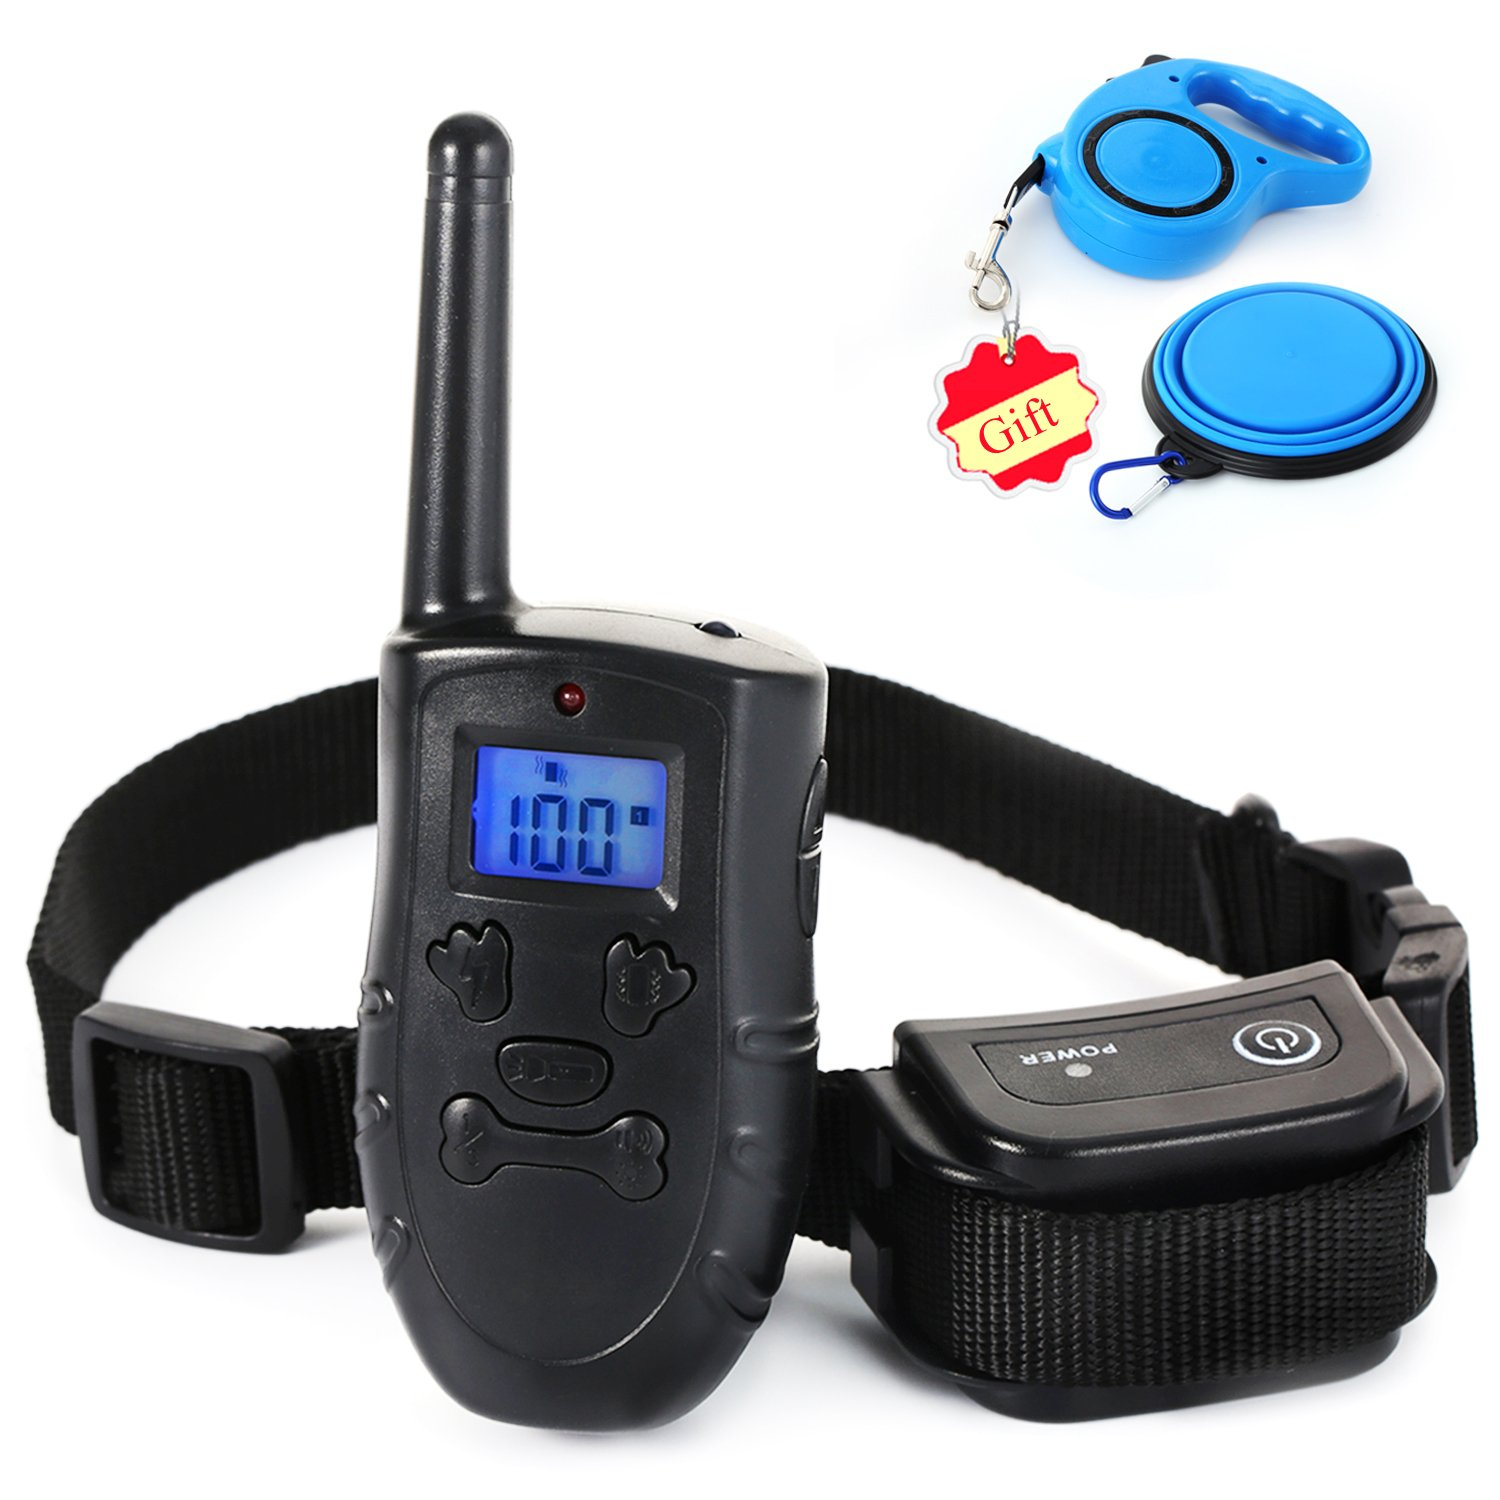 Dog Training Collar,Pet Shock Collar Electronic Rechargeable and Waterproof Remote Training Shock Collar for Dogs Bundle with Collapsible Silicone Dog Bowl & Retractable Dog Leash